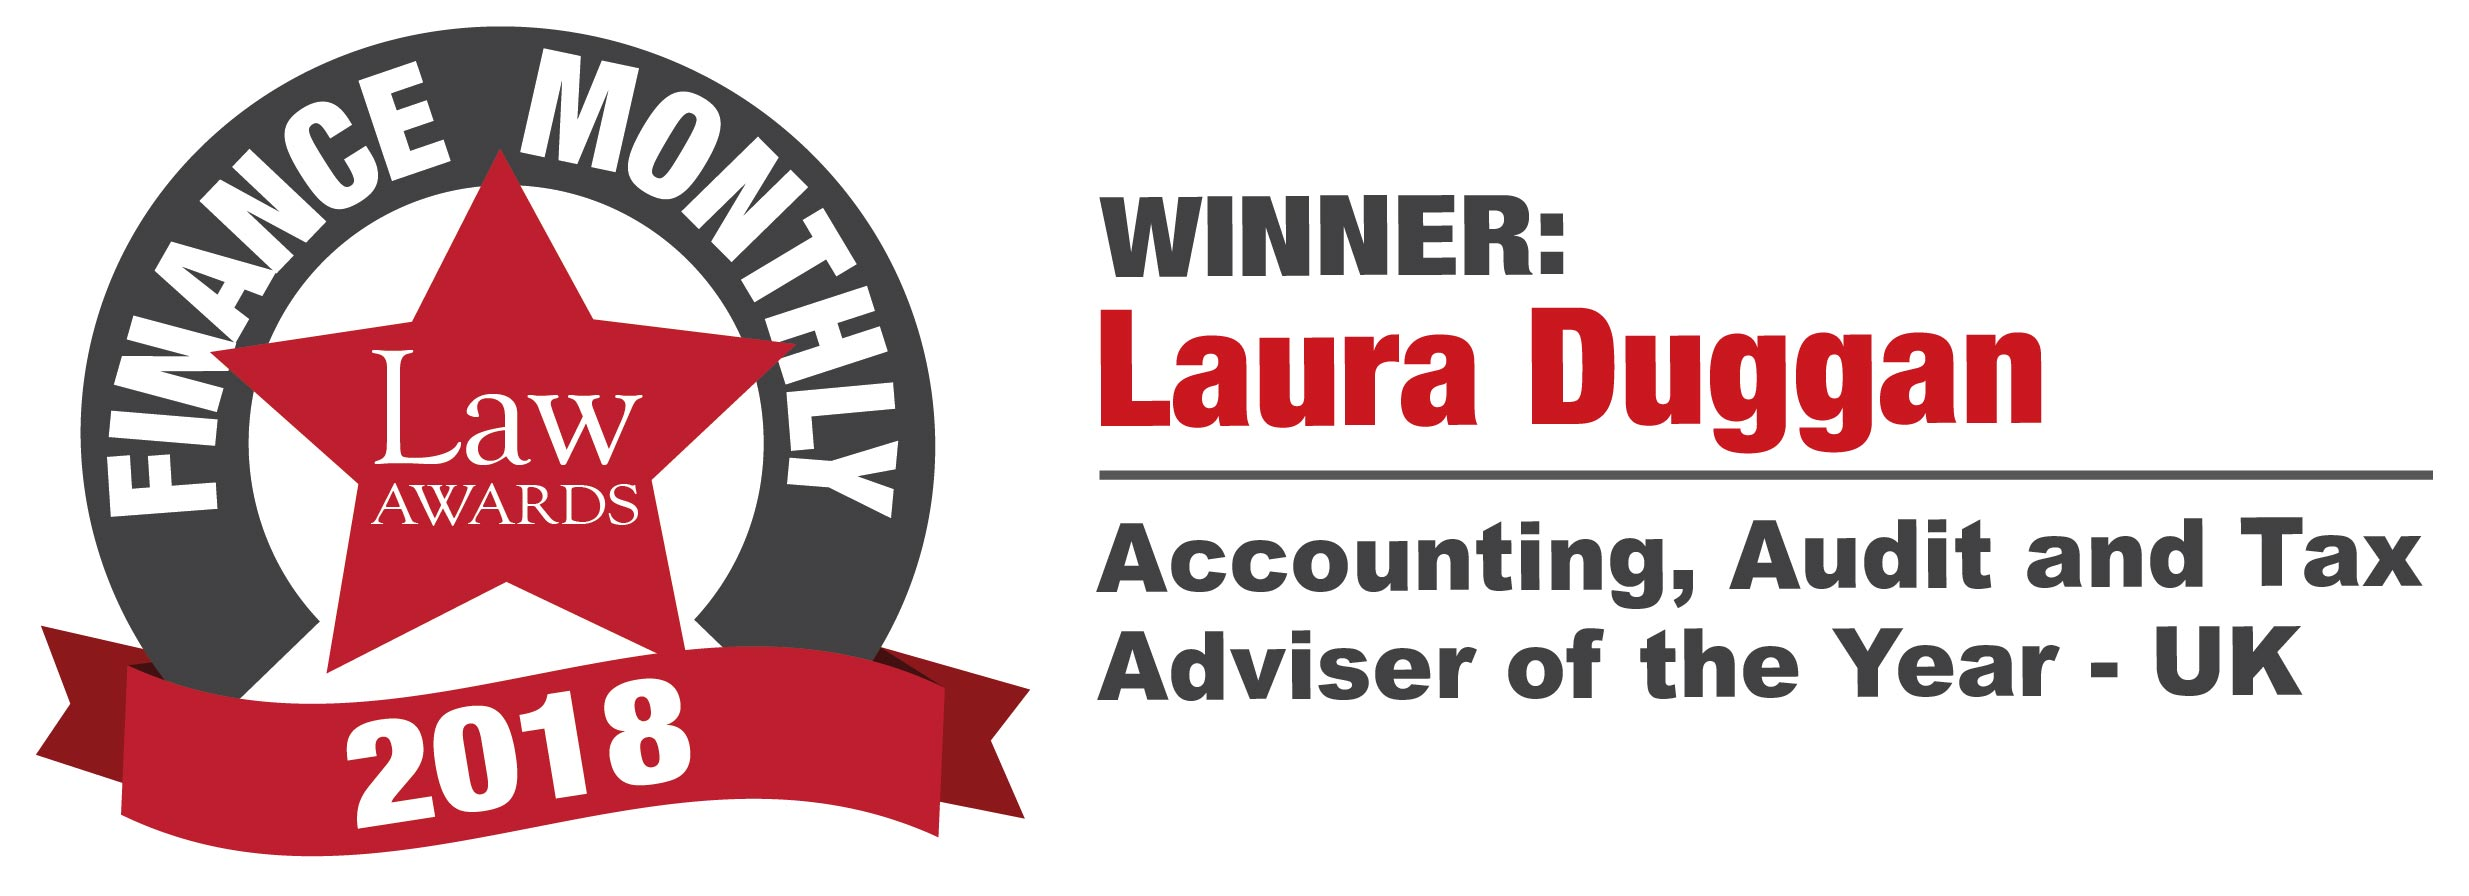 Laura Duggan, Finance Monthly Law Award Winner